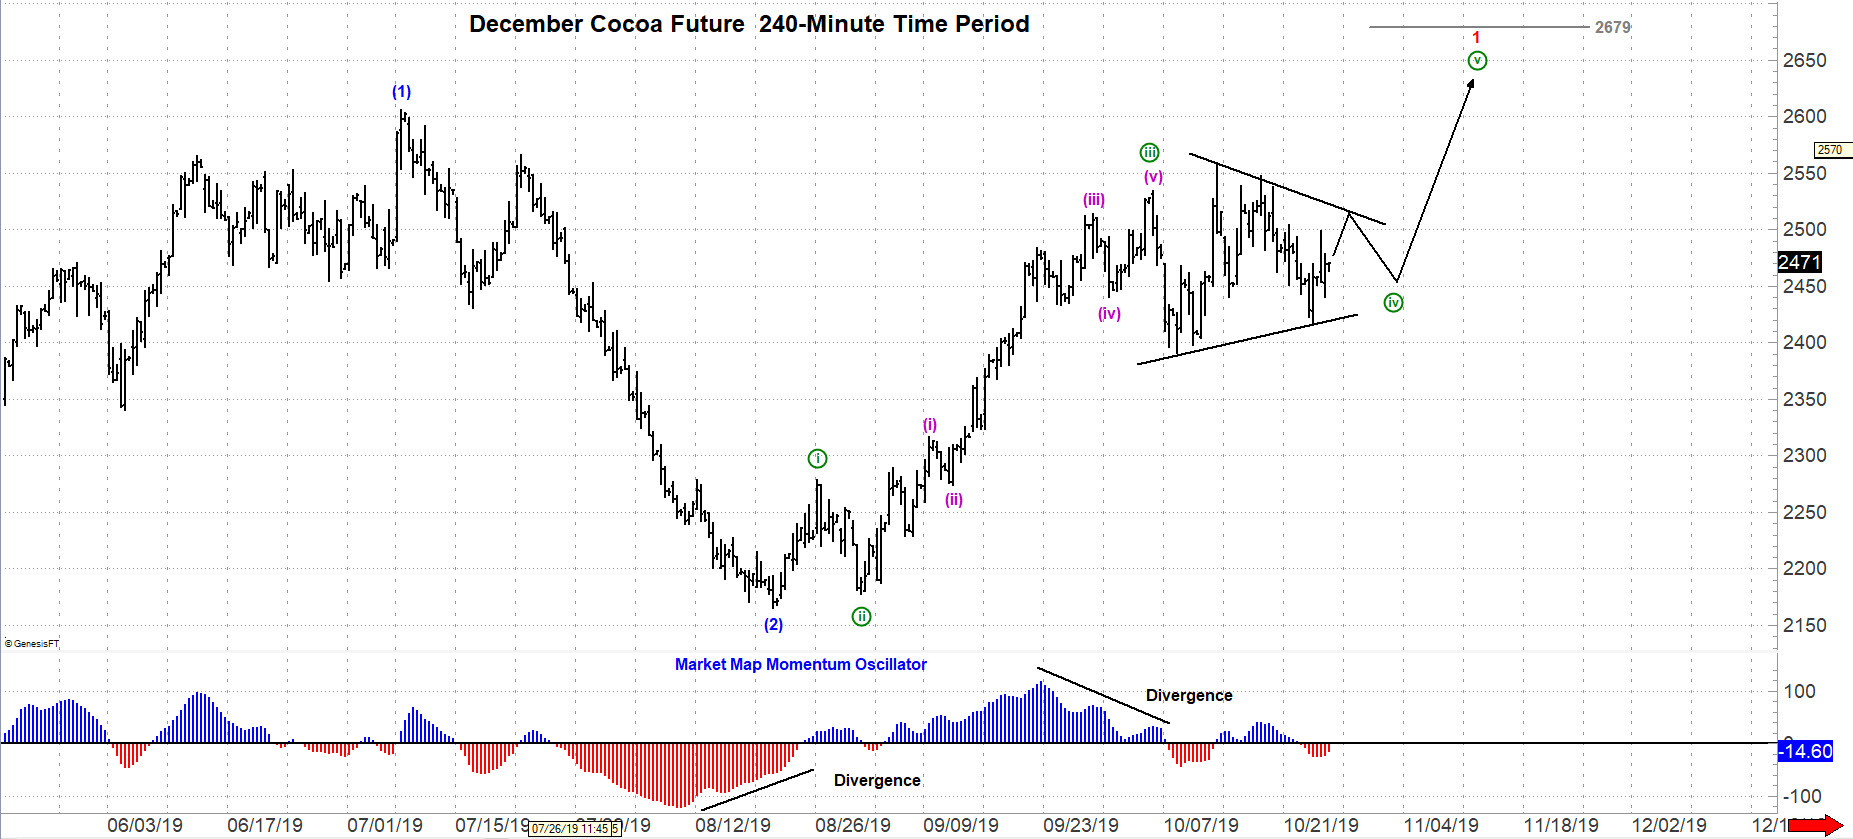 December Cocoa Futures 240 Minute Chart